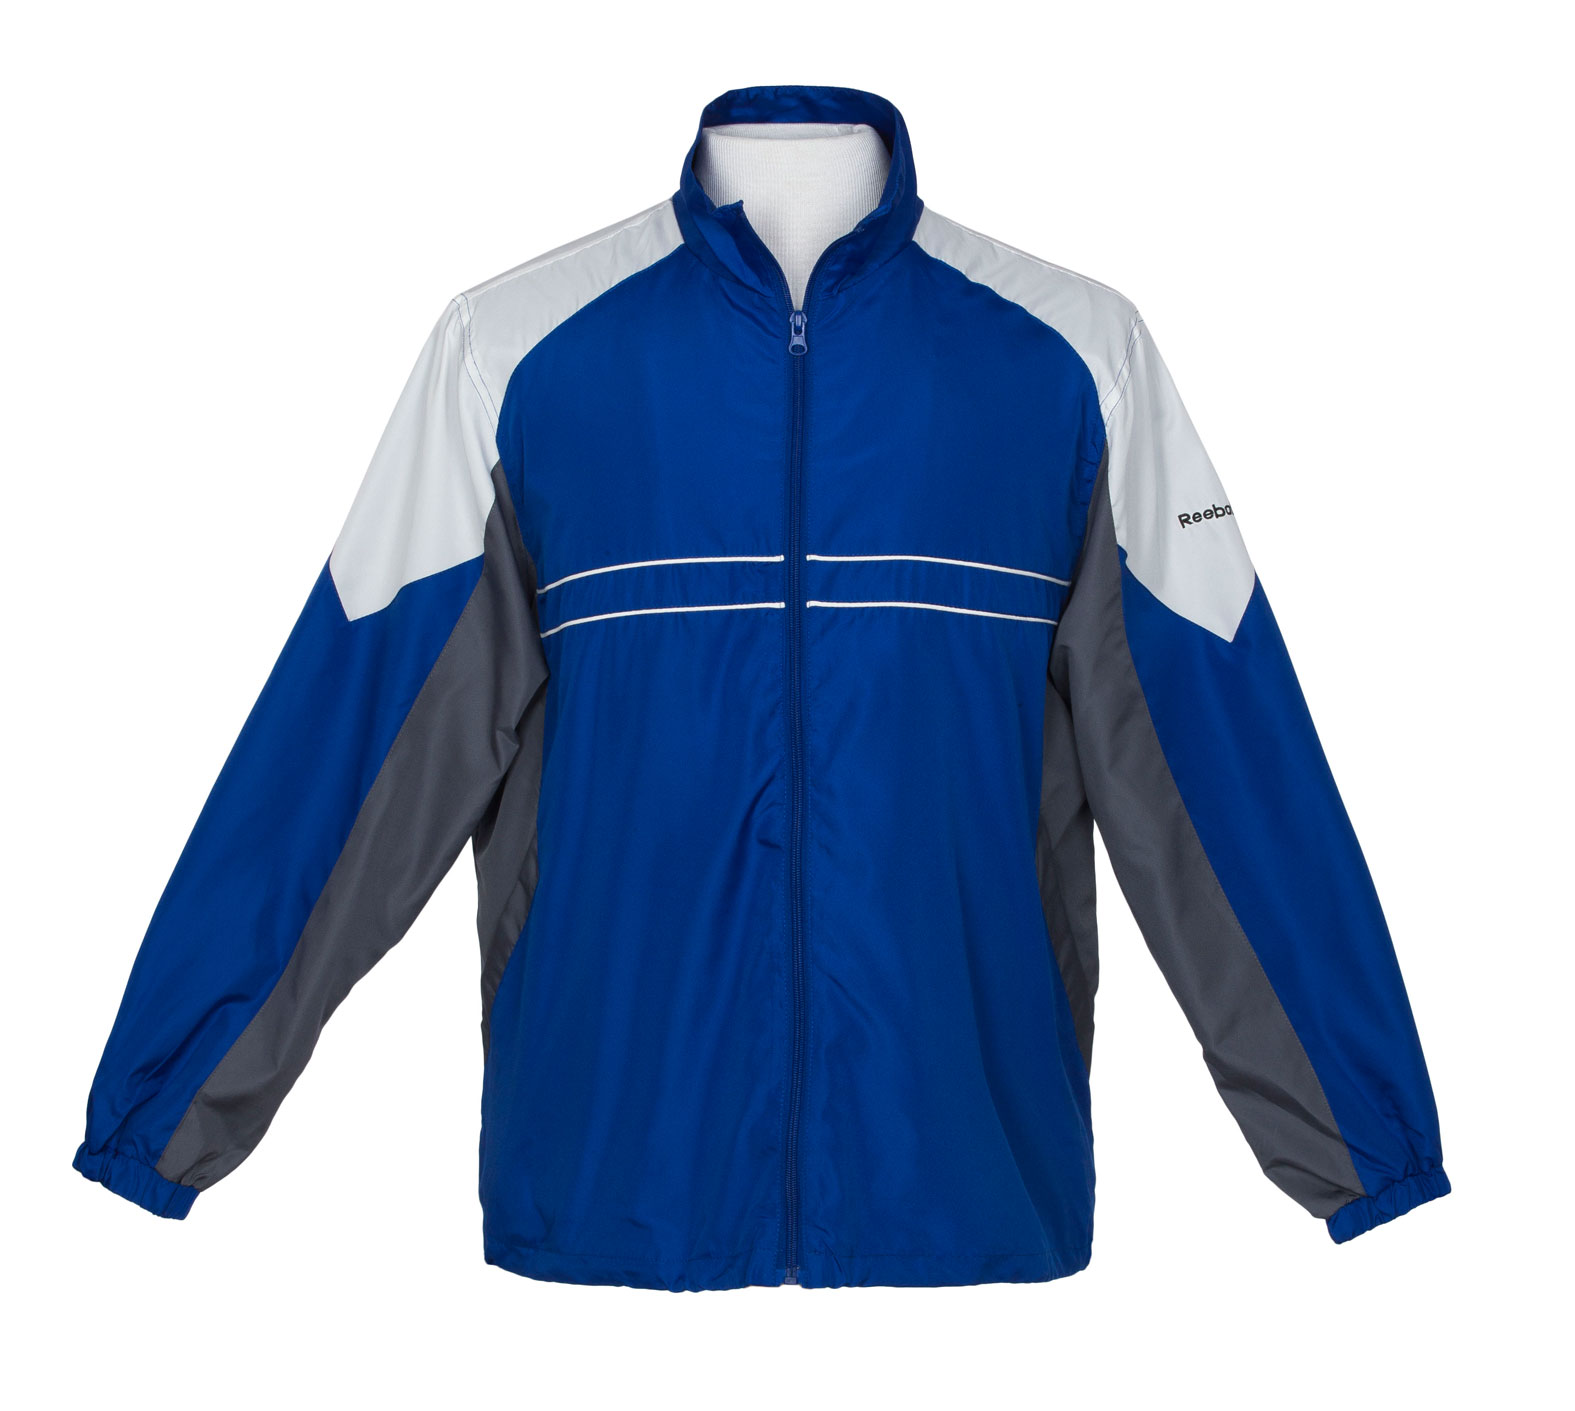 Reebok Performer Jacket